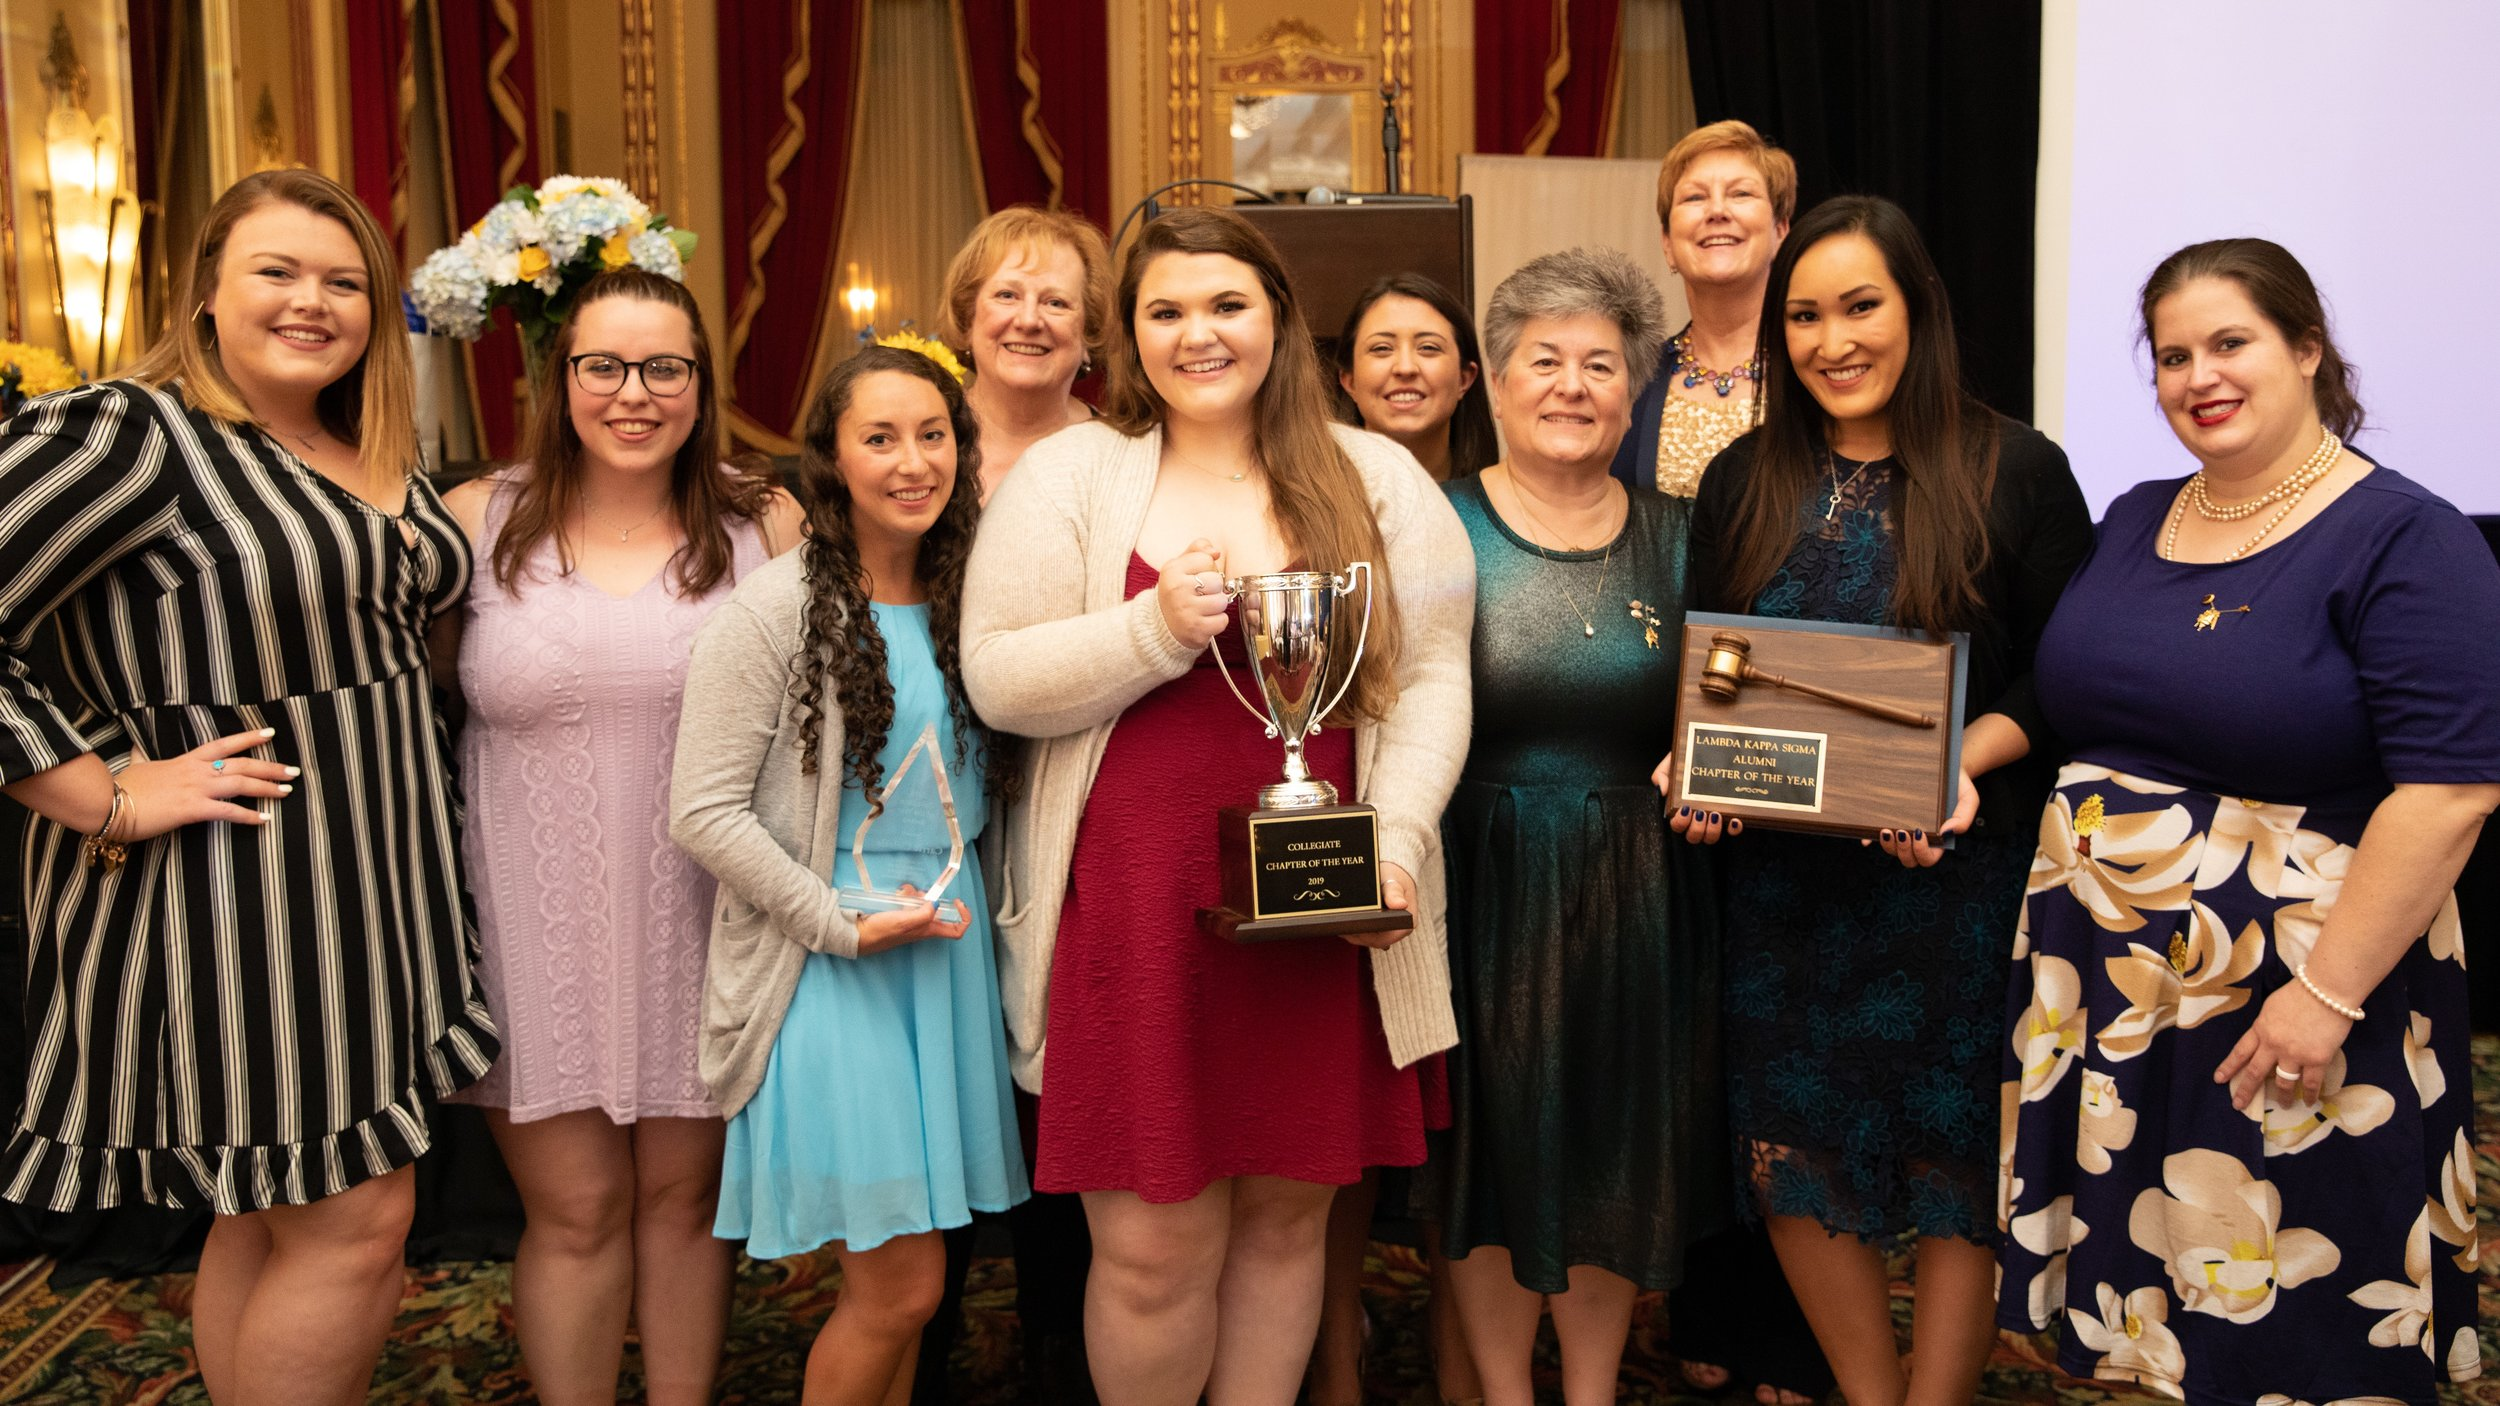 LKS Alpha Zeta won Collegiate and Alumni Chapters of the Year at the 2019 Convention in Milwaukee, WI. Recent graduate Carrie Cicirale was also honored with the 2019 Collegiate of the Year award. A GREAT year for Alpha Zeta!